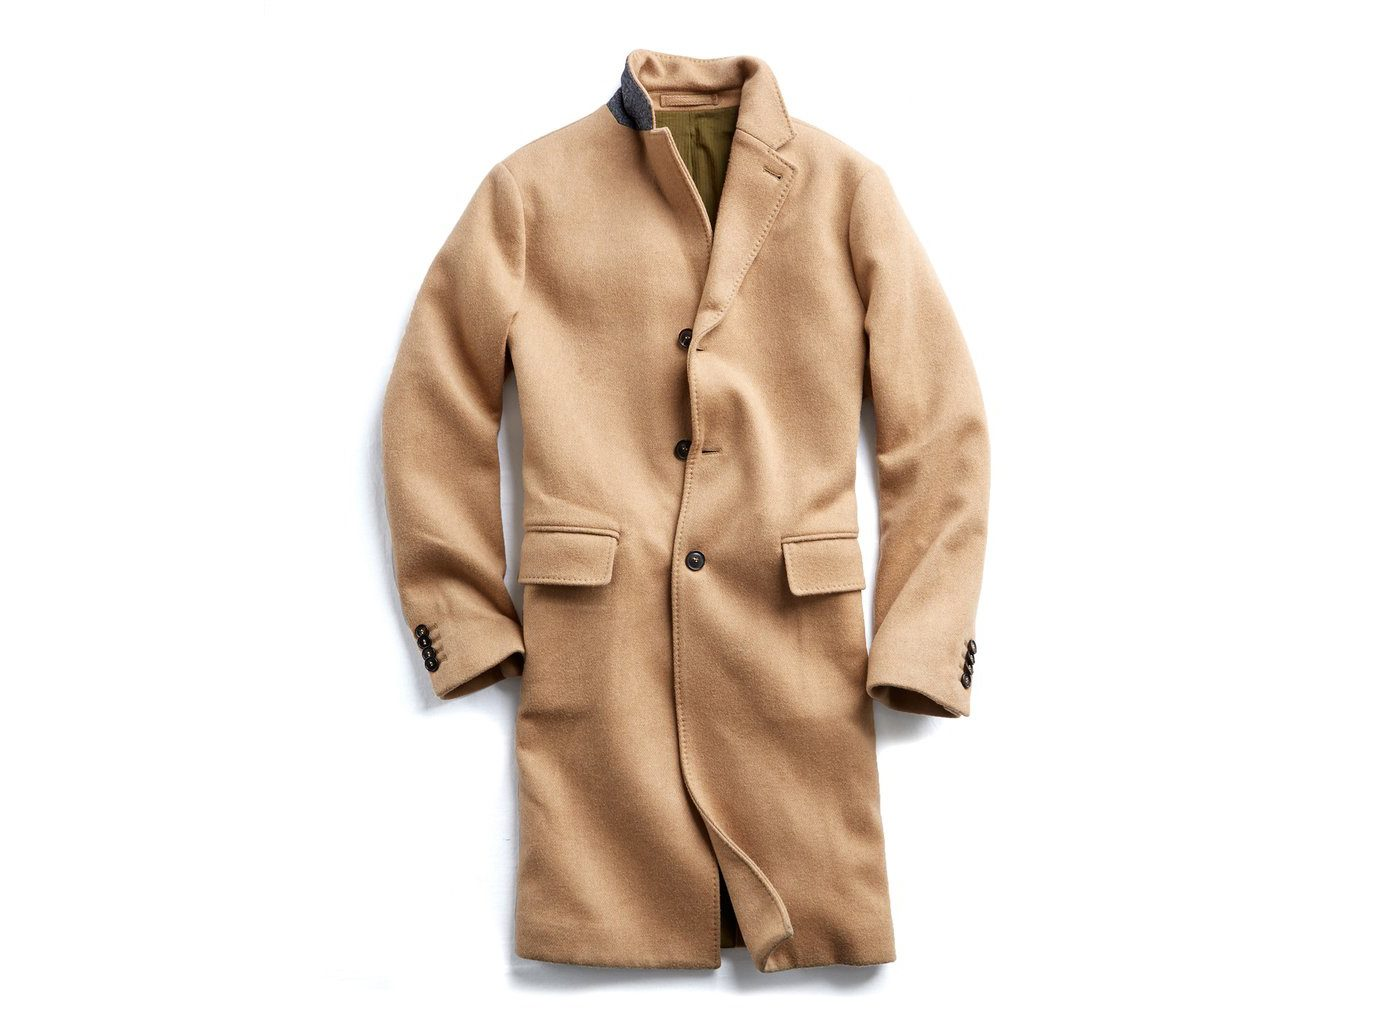 Italian Wool Cashmere Camel Topcoat